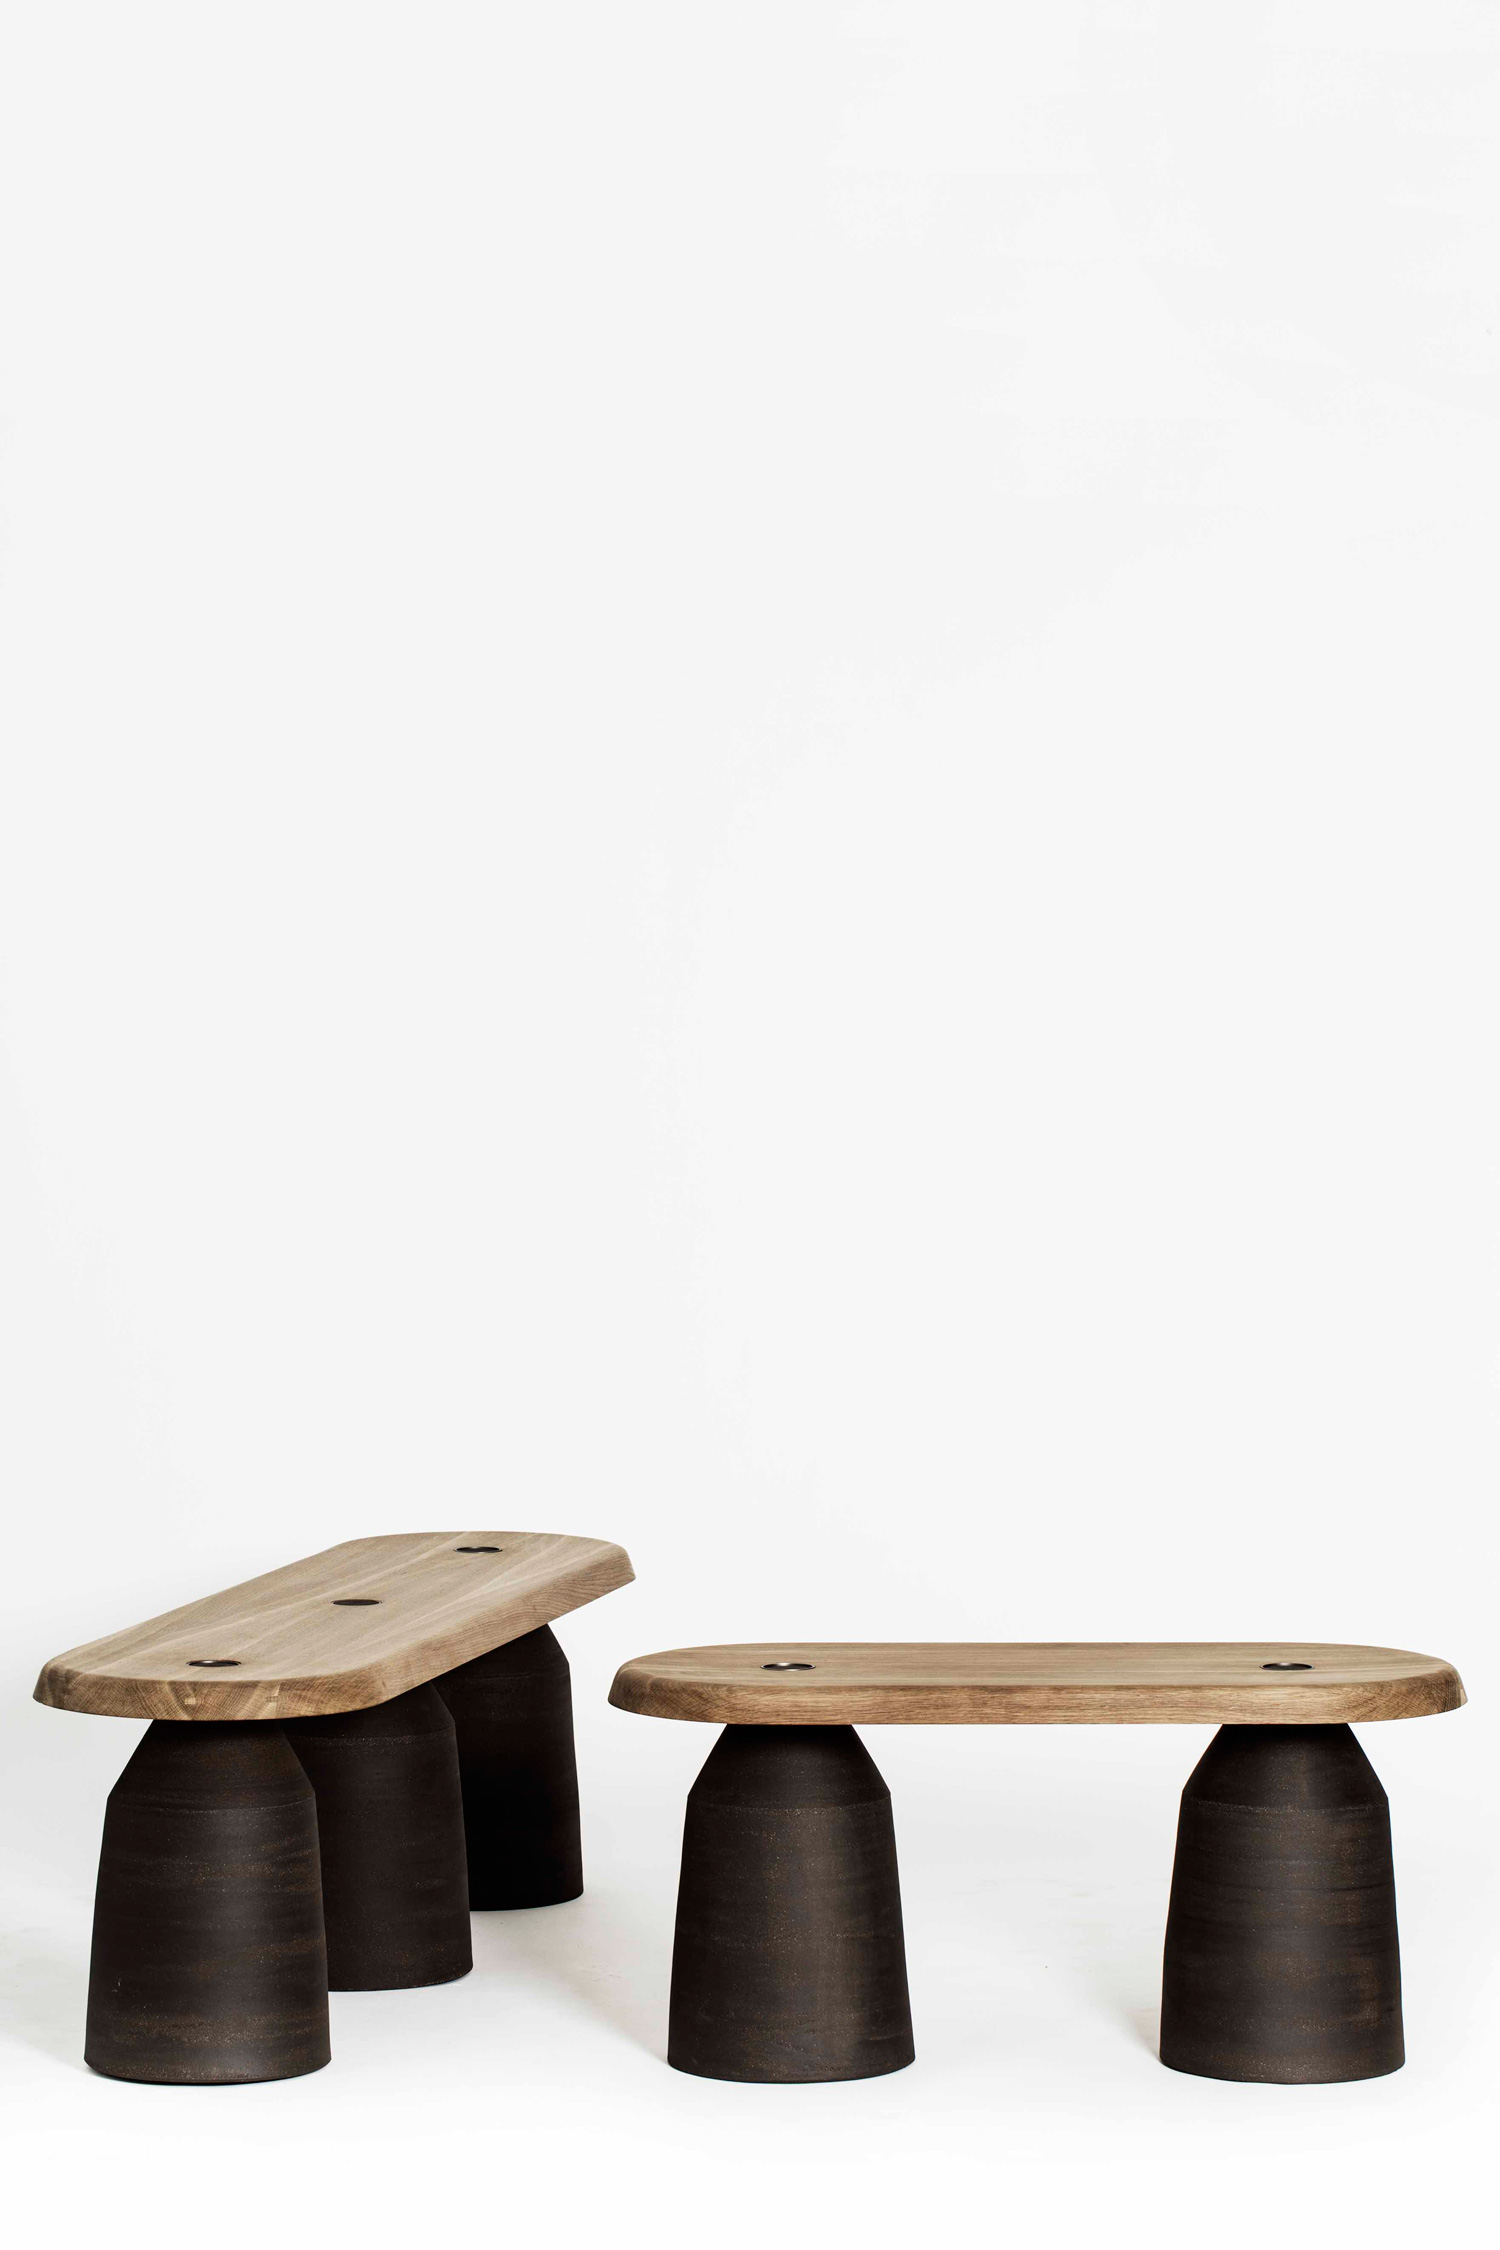 Base Bench / Maria Bruun (1)